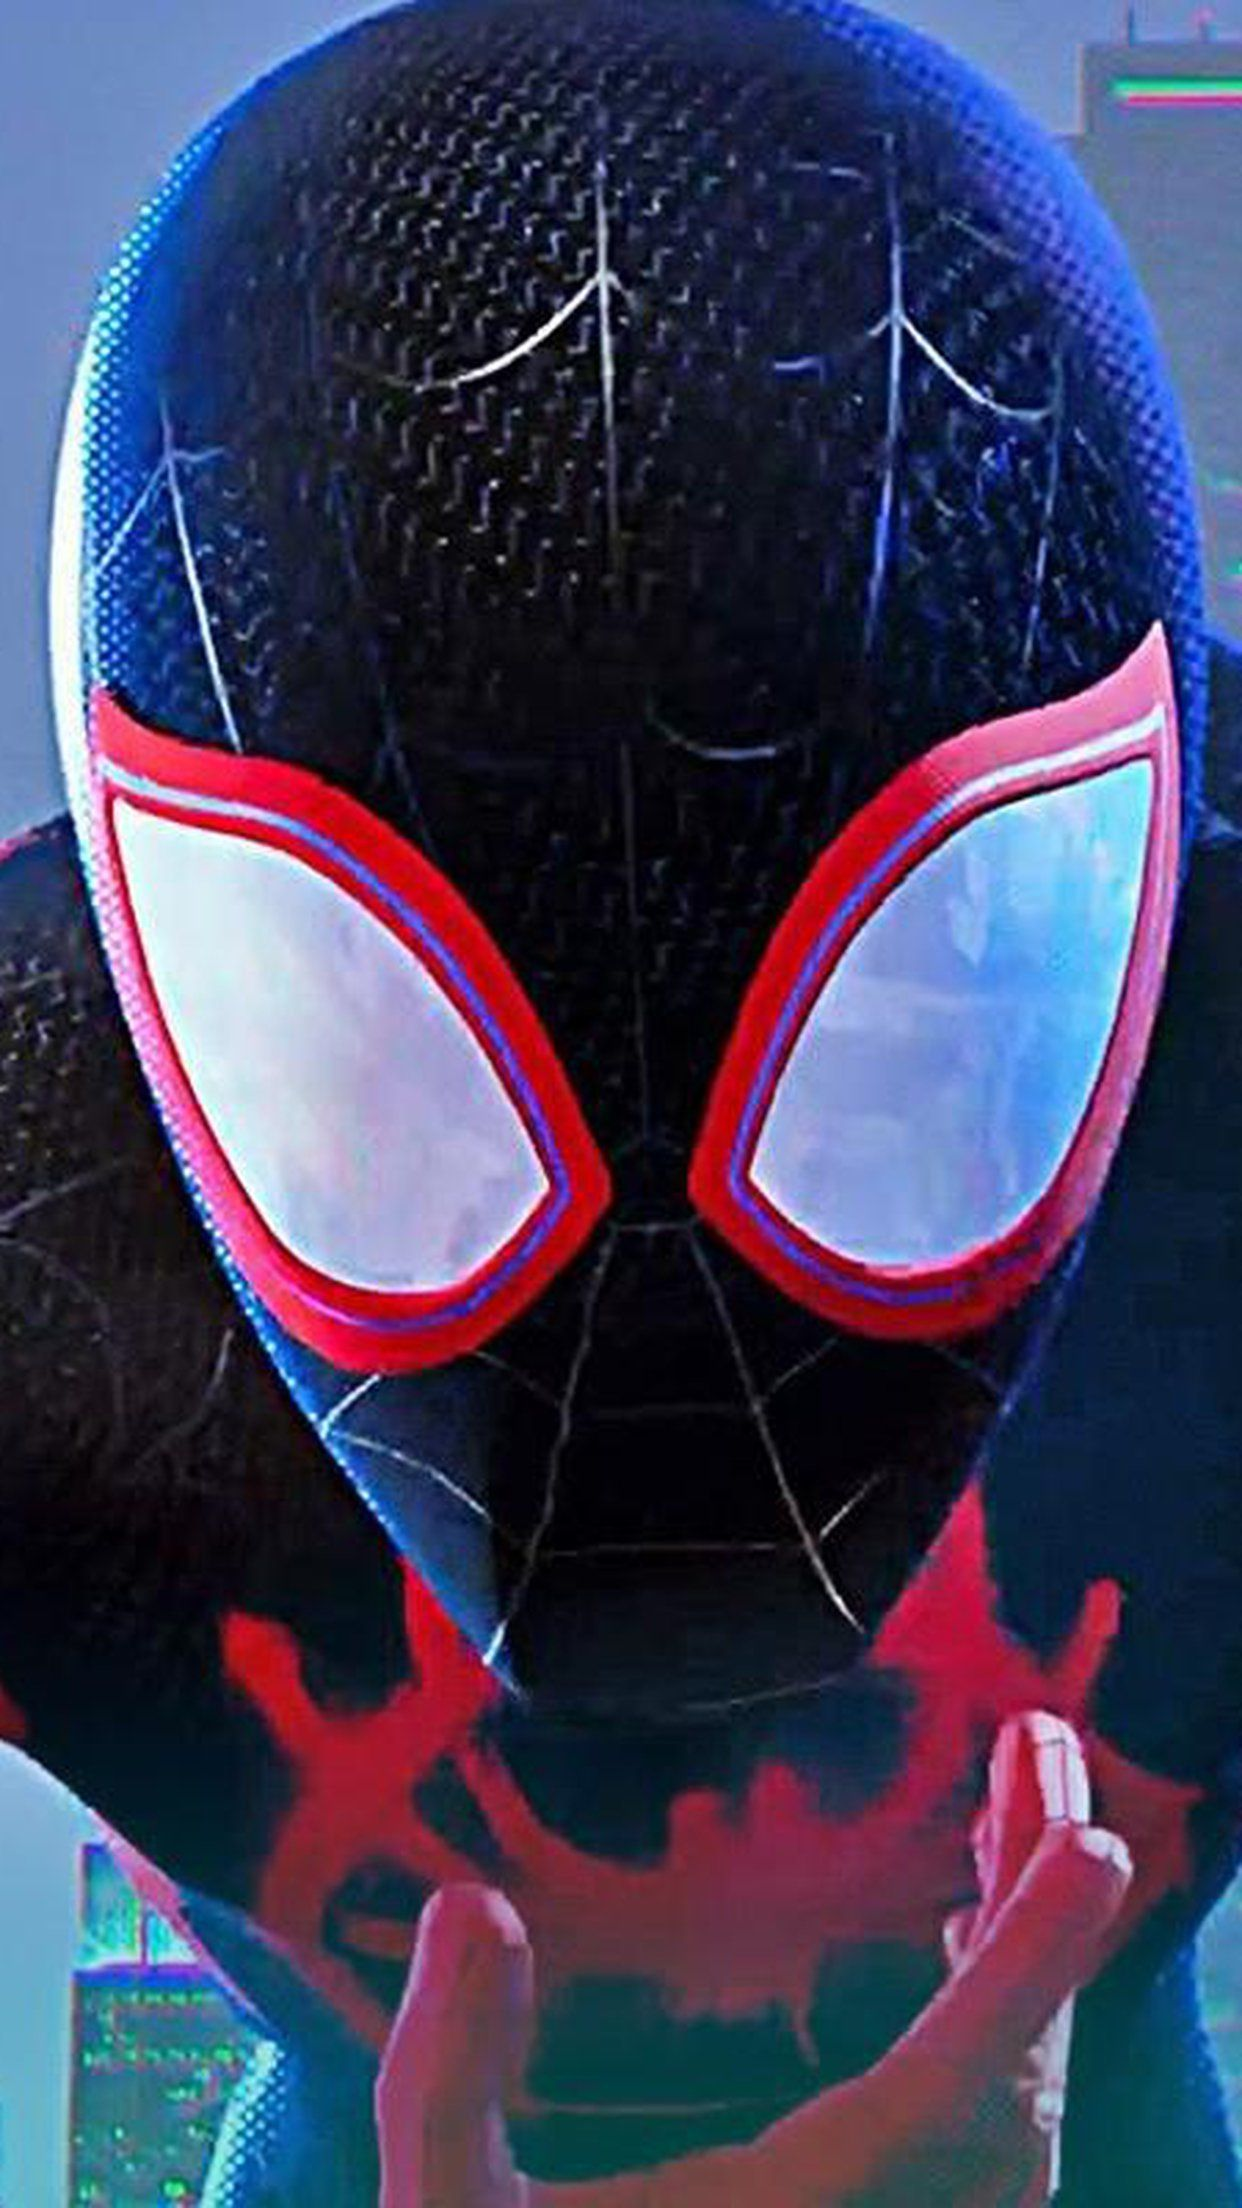 Download Spider Man Into The Spider Verse Close Up For Iphone 8 Plus Iphone 6s Plus Wallpaper Movies Wallpaper For Phone Desktop Backgrounds Collections Spiderman Spider Verse Movie Wallpapers